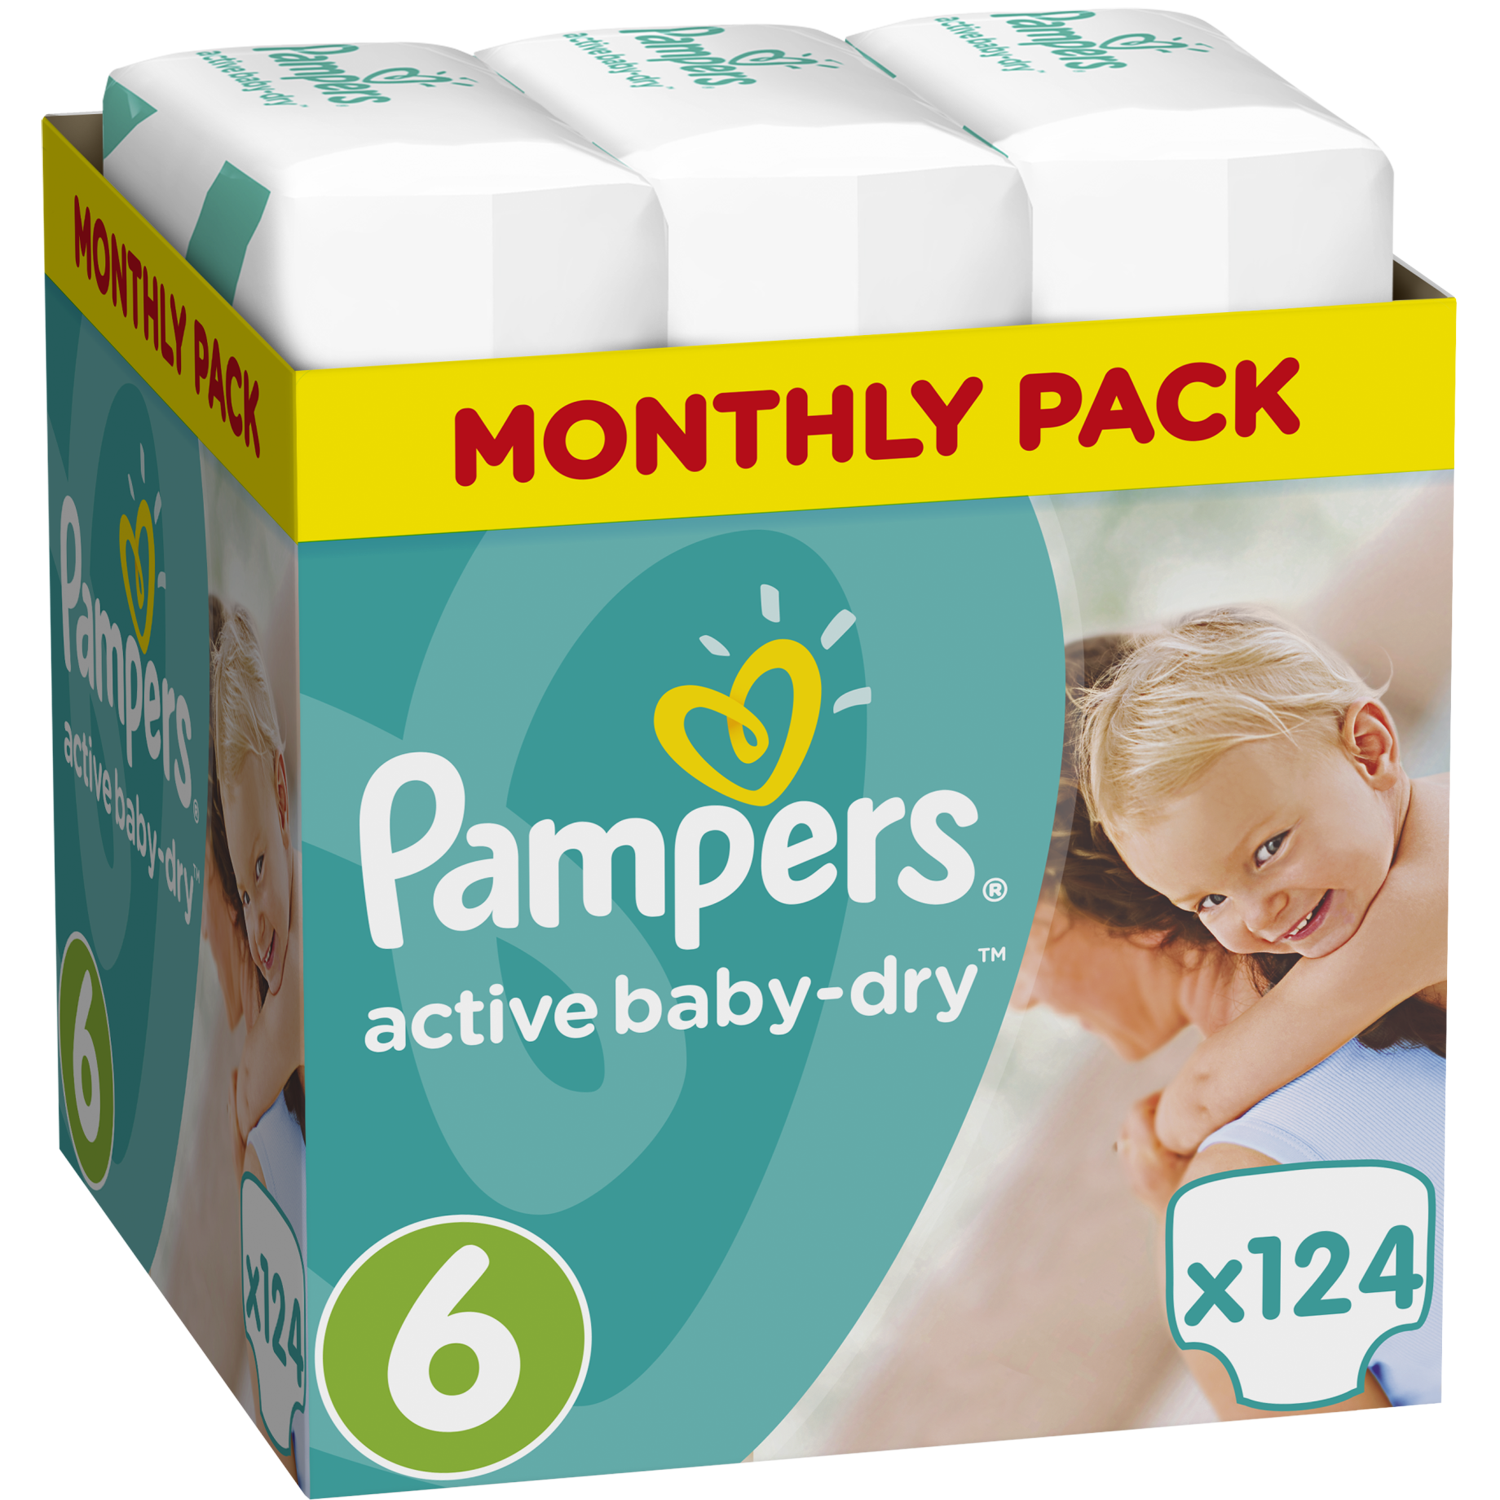 Pampers Active Baby Dry Monthly Pack No6 (15+kg) 124 πάνες, μόνο 0,32€ / πάνα 19620